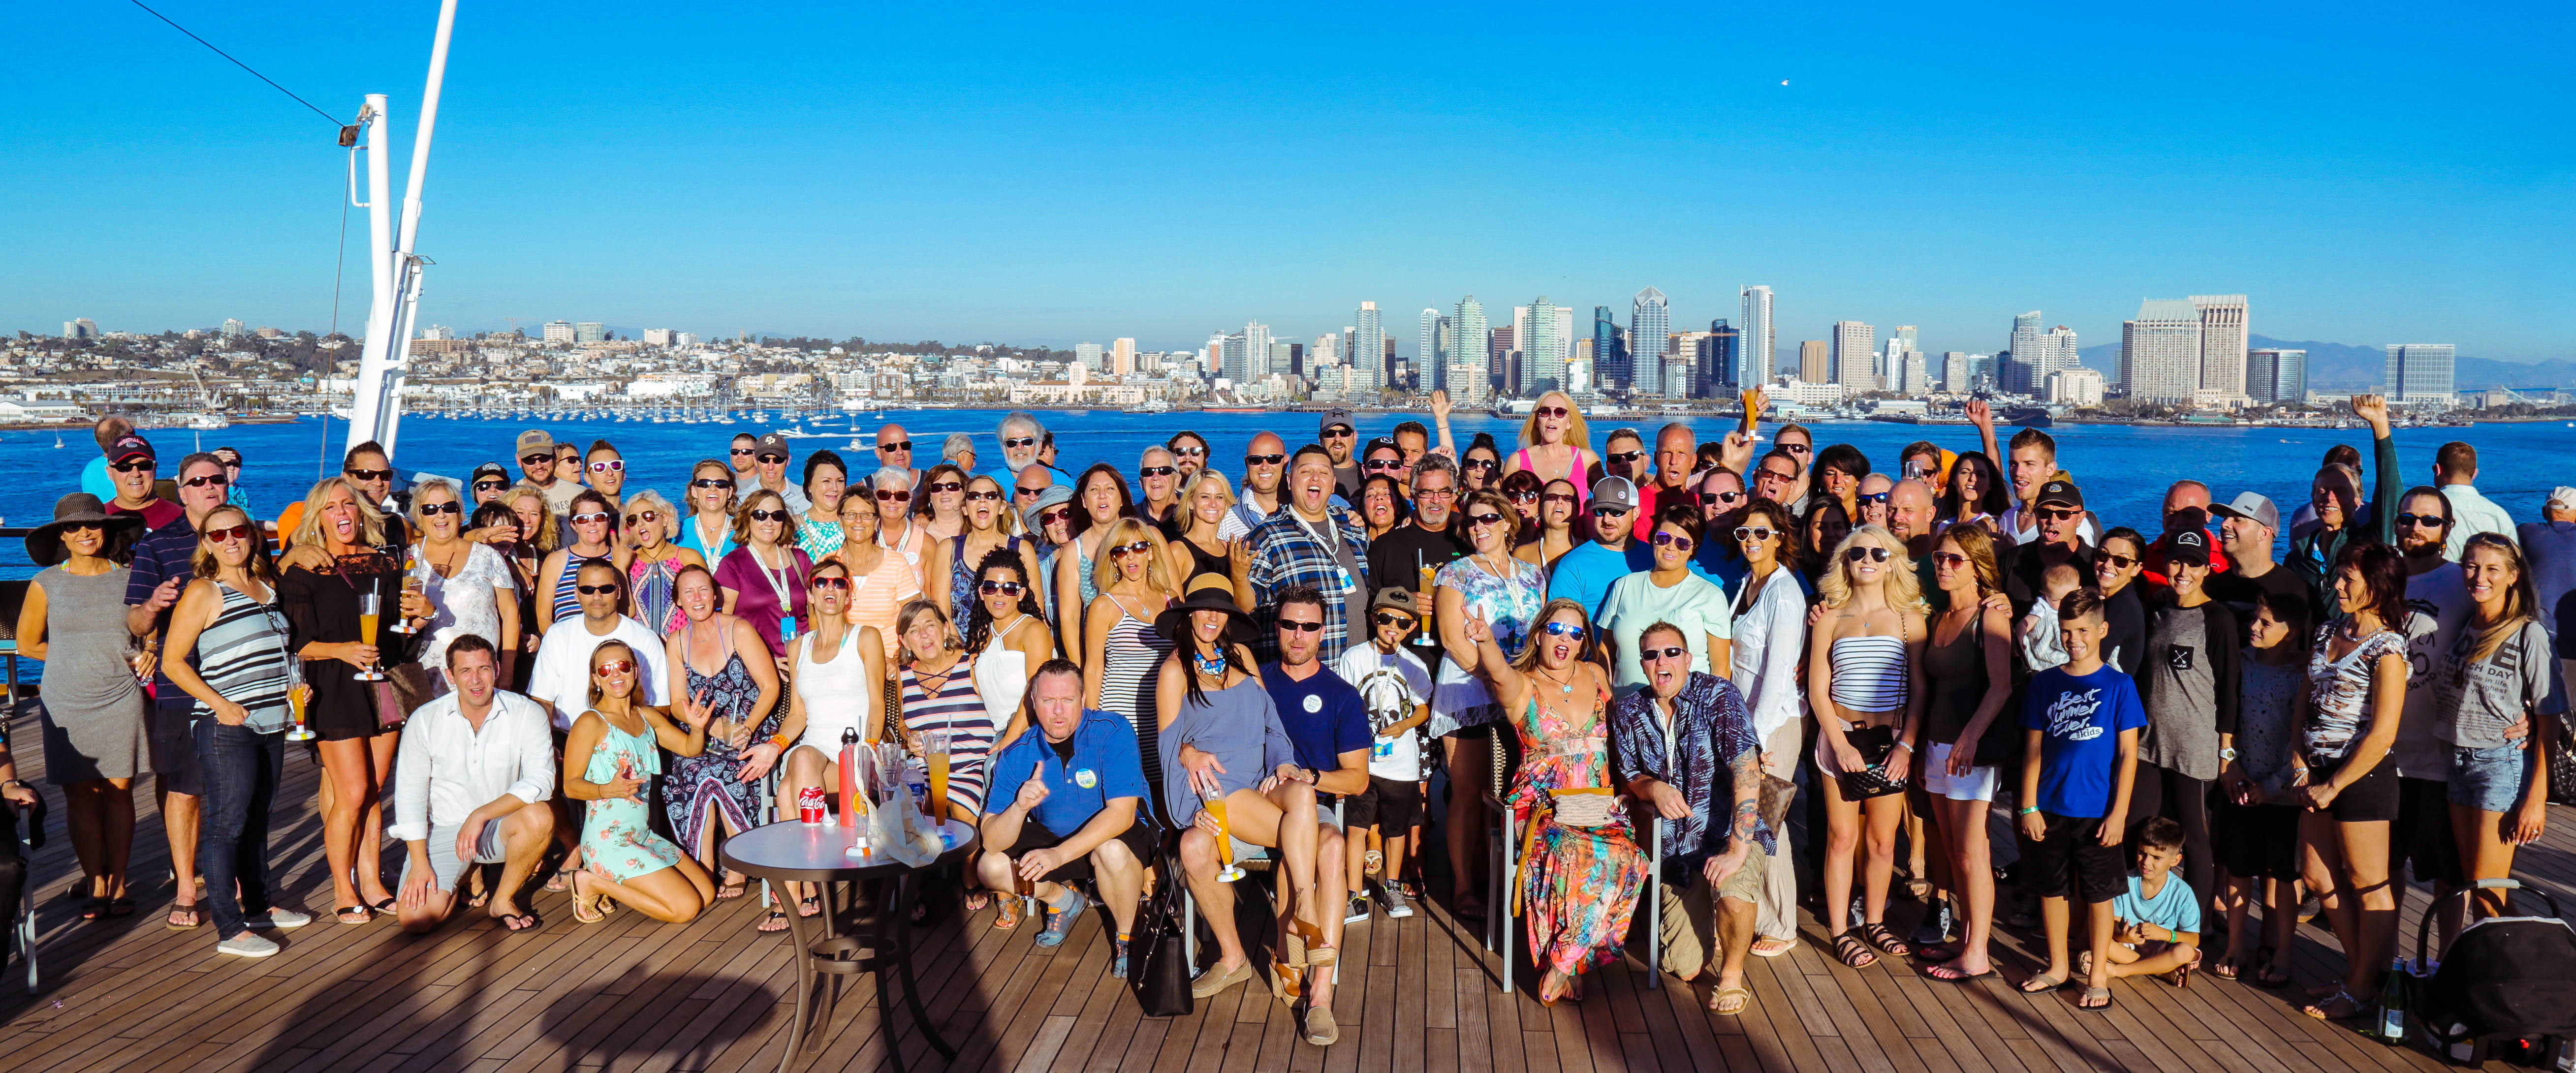 Kannaway hosts Mexican cruise